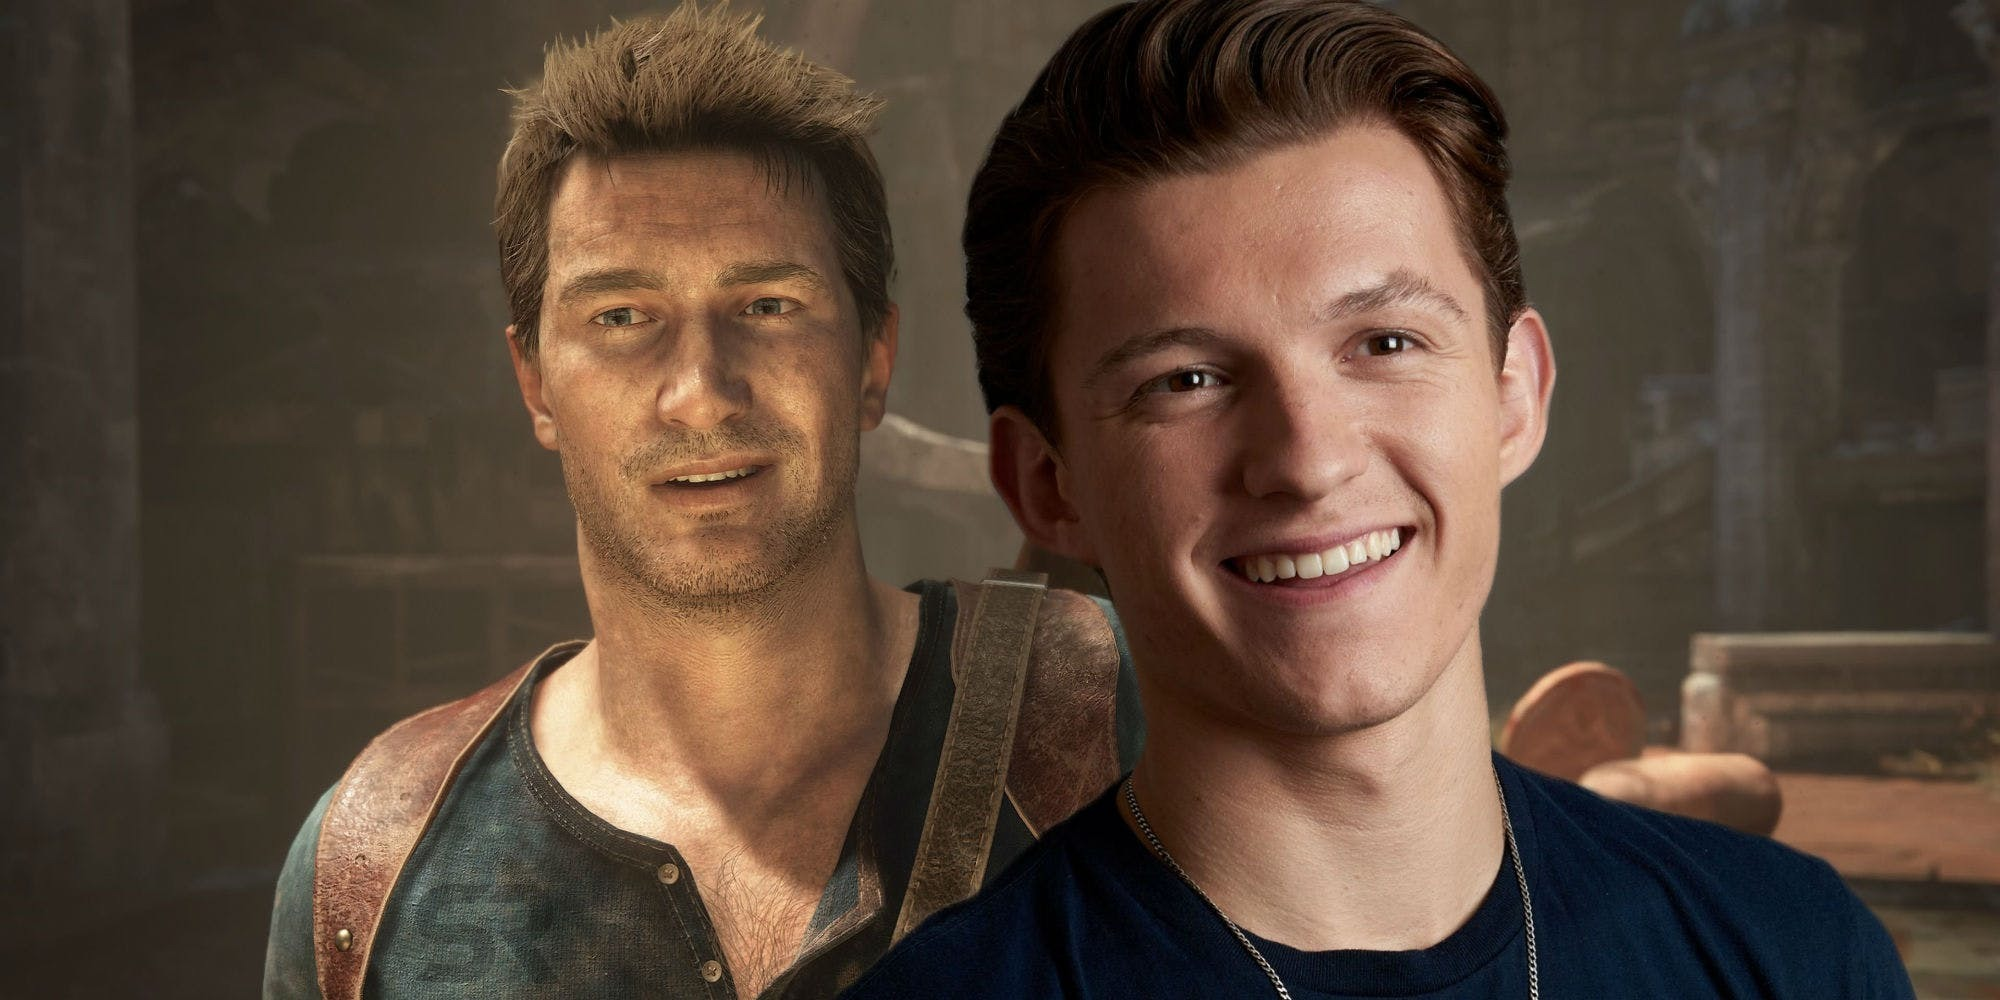 Tom Holland said that Unchartered movie will be an origin story